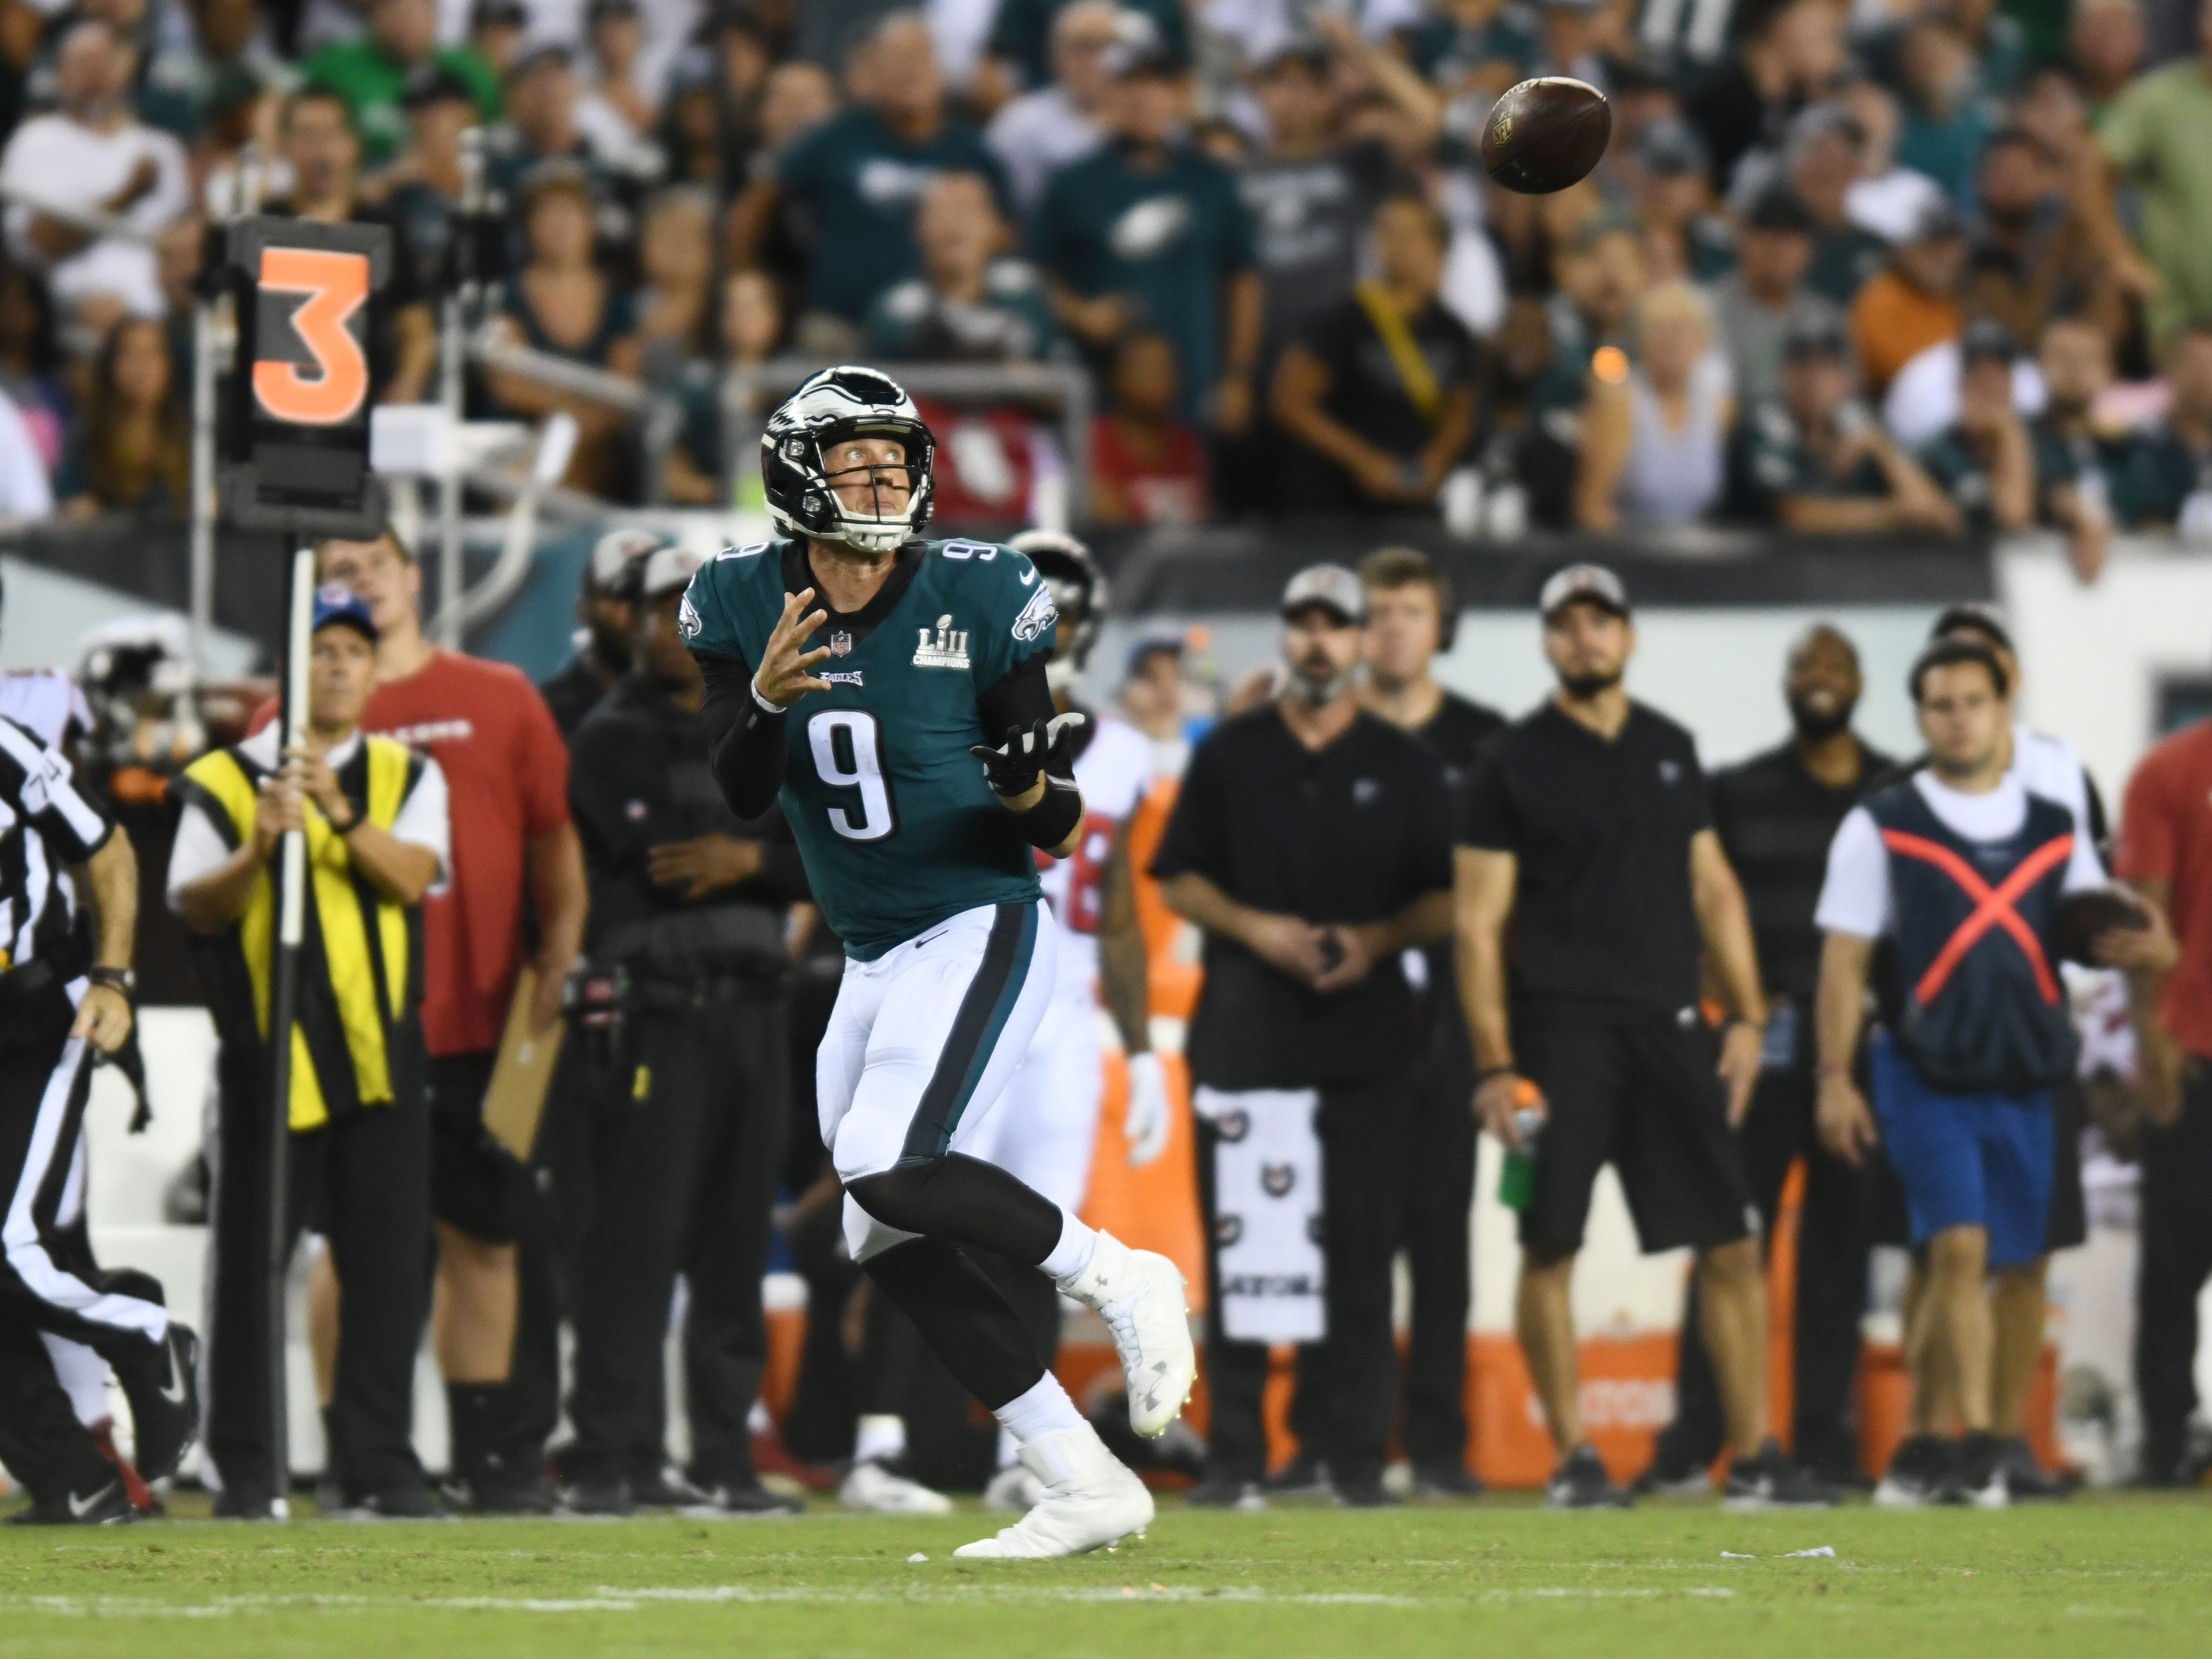 Philadelphia Eagles quarterback Nick Foles catches a pass from wide receiver Nelson Agholor in the third quarter against the Atlanta Falcons at Lincoln Financial Field.